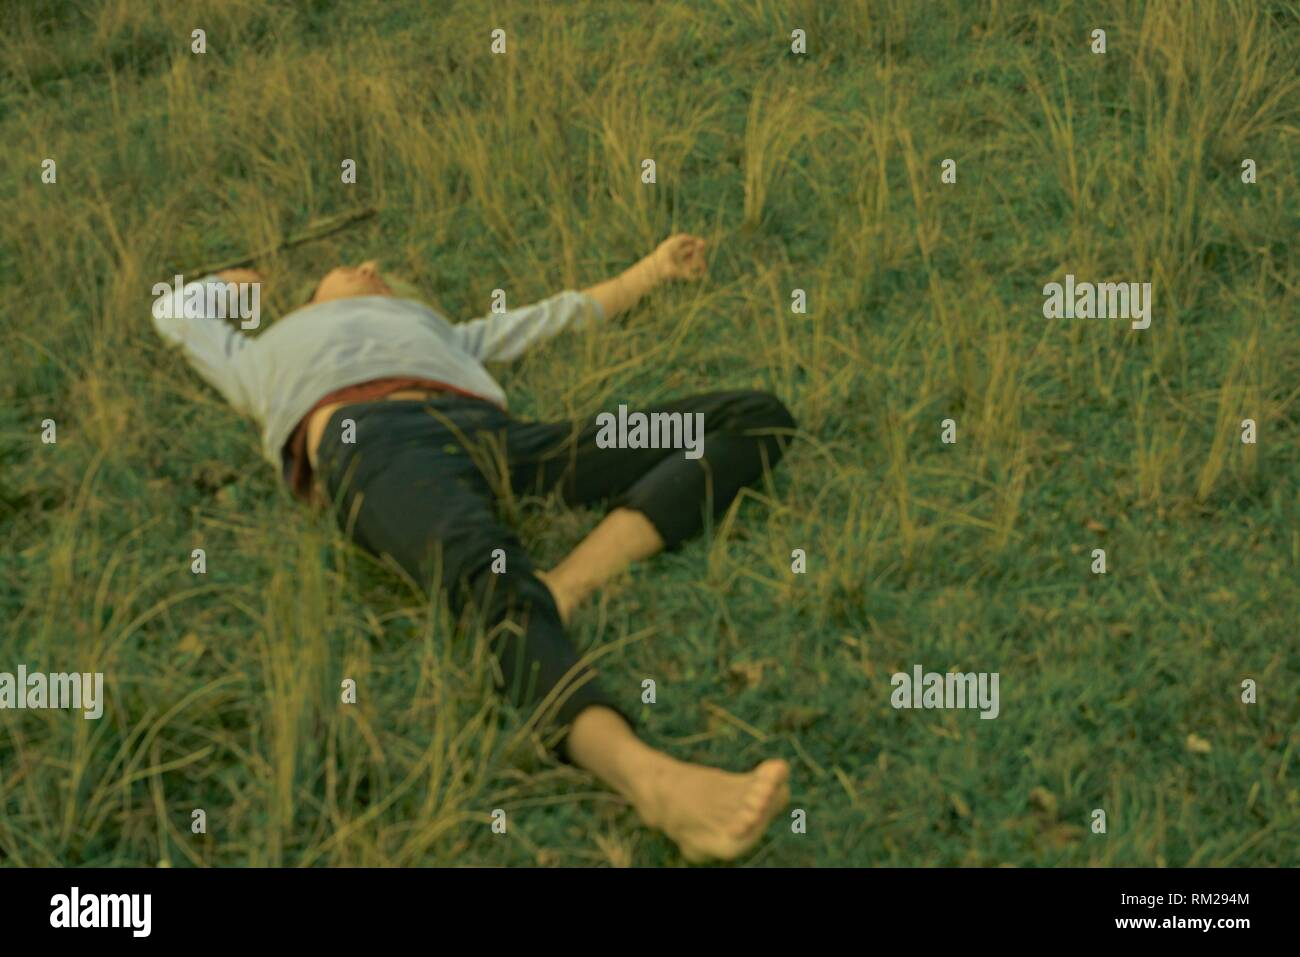 young man lying in meadow, nature, nature bonding, back to nature, lost, resting, exchausted, exhaustion, relaxing, escaping daily life, escaping, - Stock Image